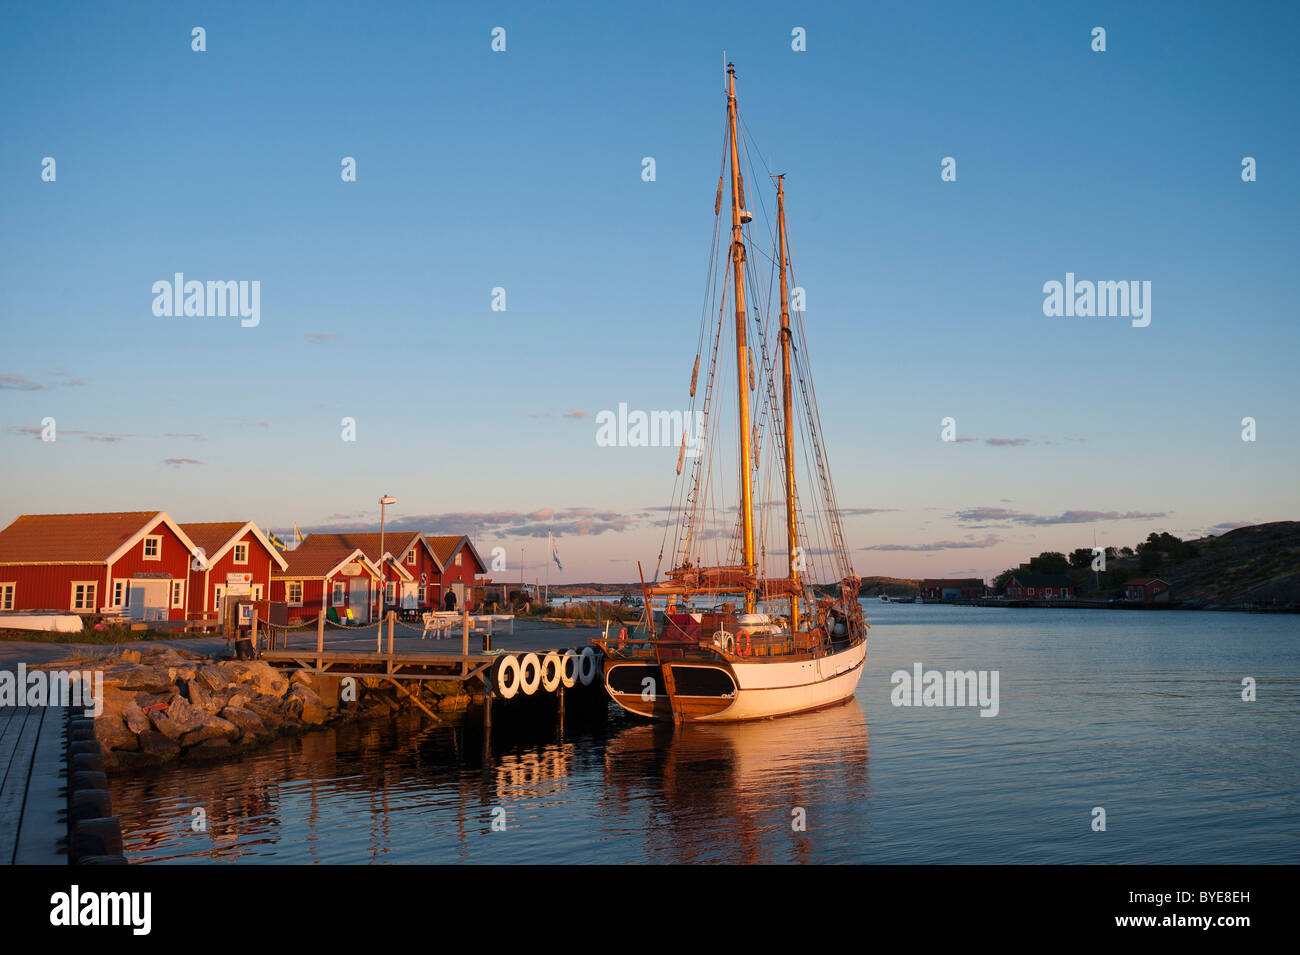 Sailing yacht anchored in the harbour, Molloesund, Vaestra Goetaland County, Sweden, Europe - Stock Image